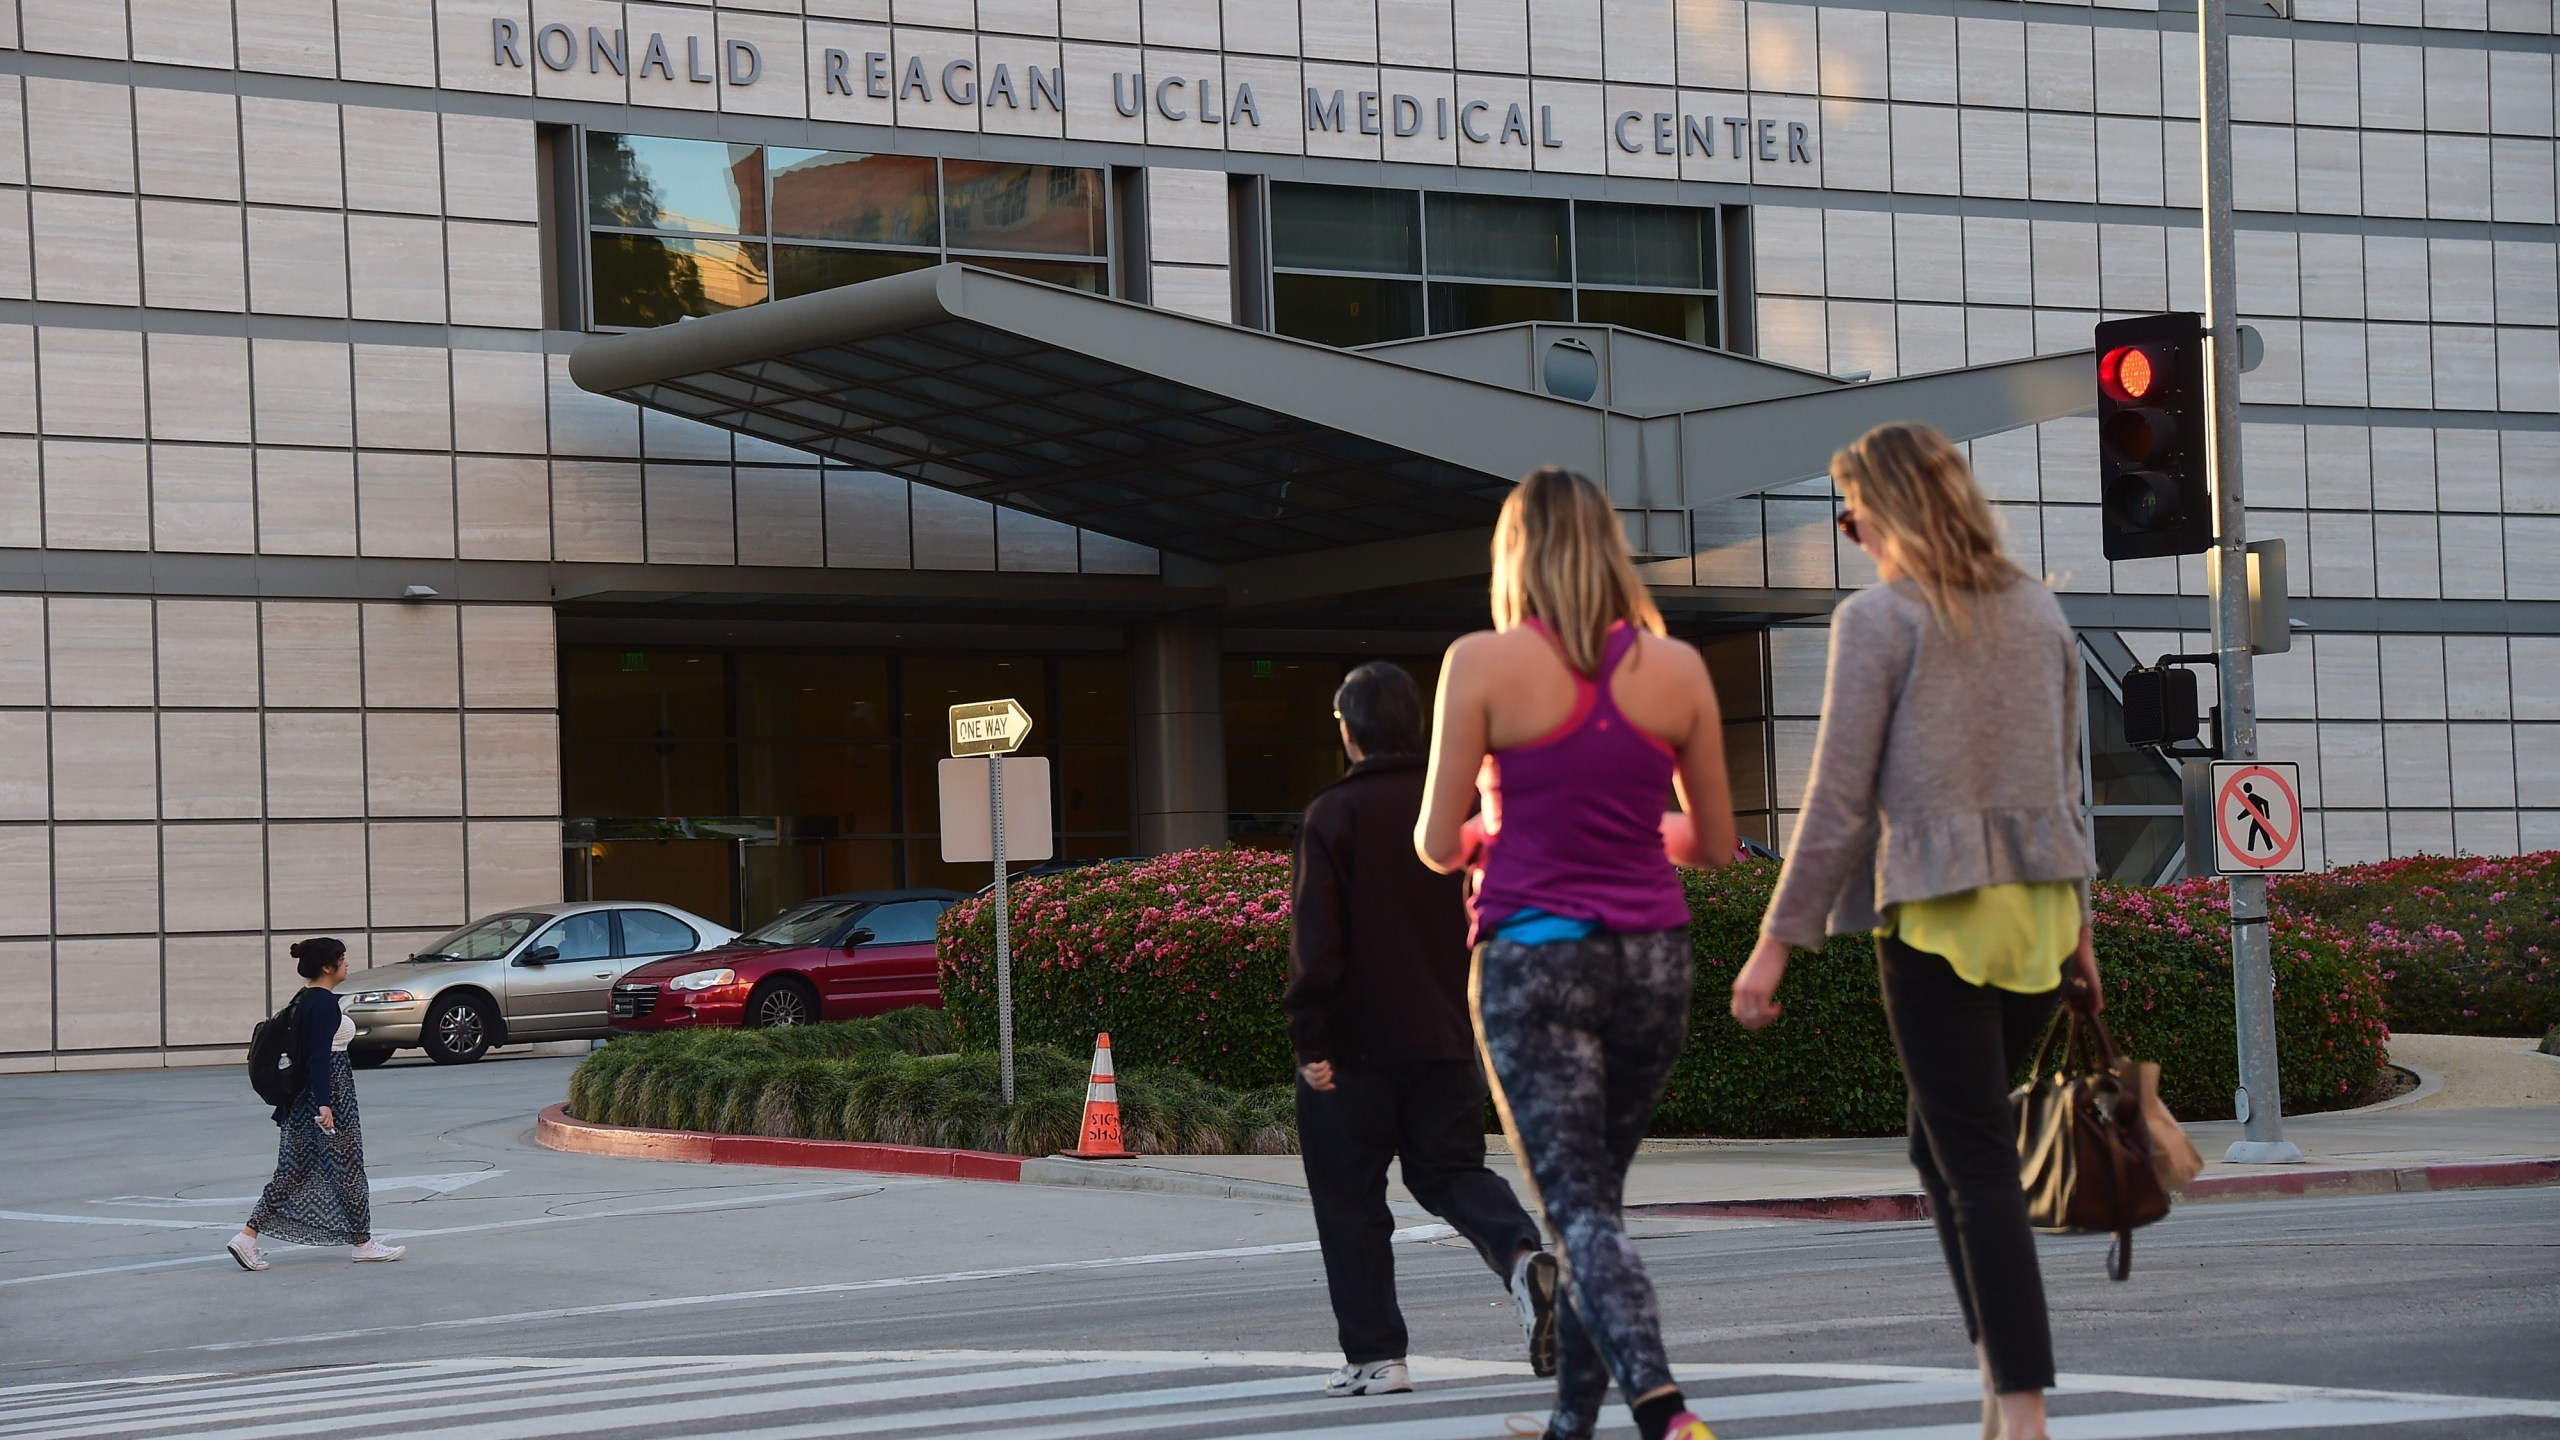 Pedestrians cross the road to the Ronald Reagan UCLA Medical Center on March 5, 2015. (Credit: Frederic J. Brown / AFP / Getty Images)